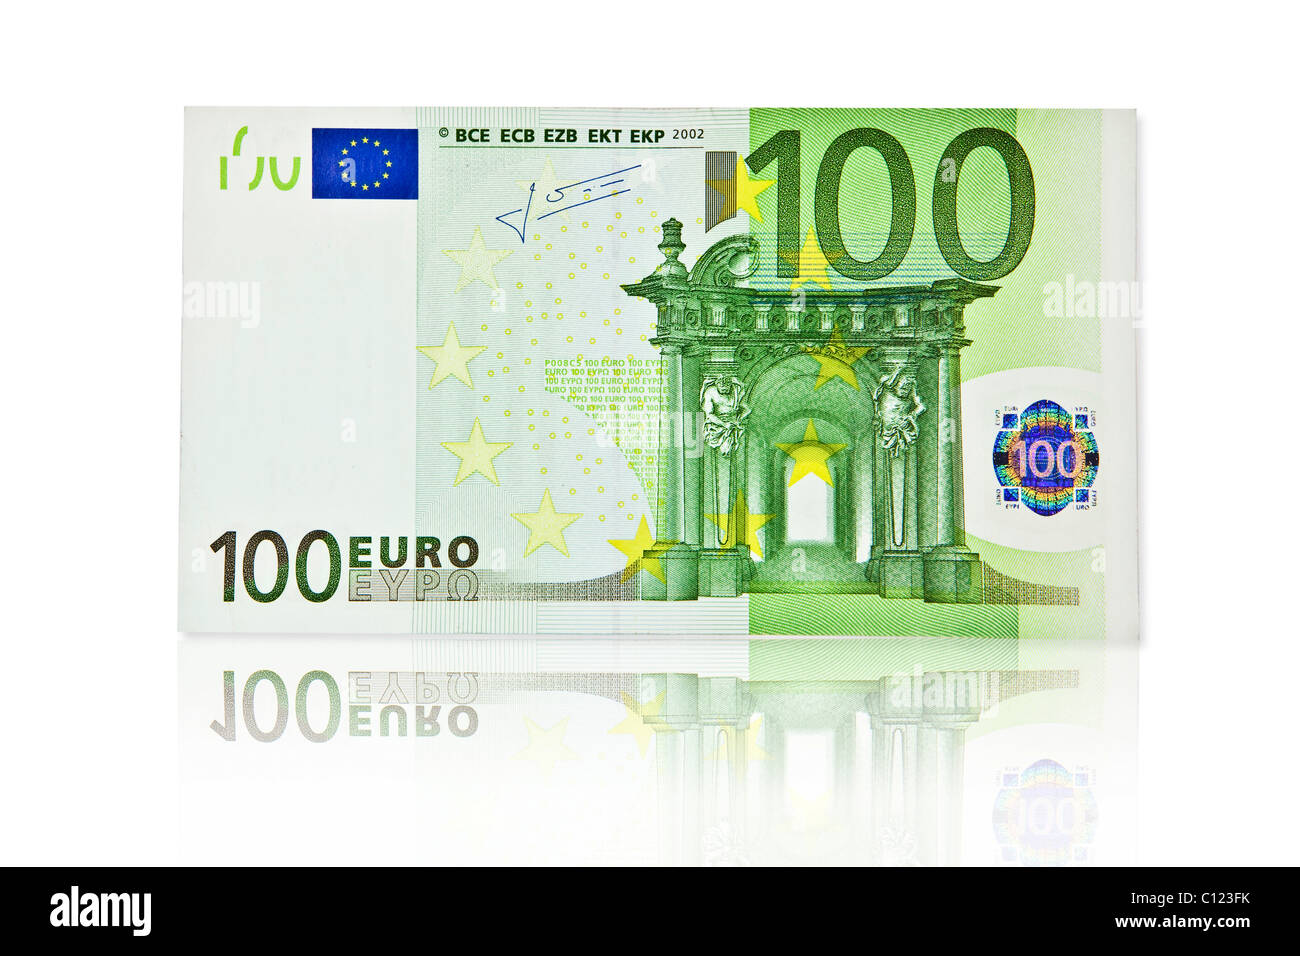 100 Euro Banknote Front Stock Photo Royalty Free Image